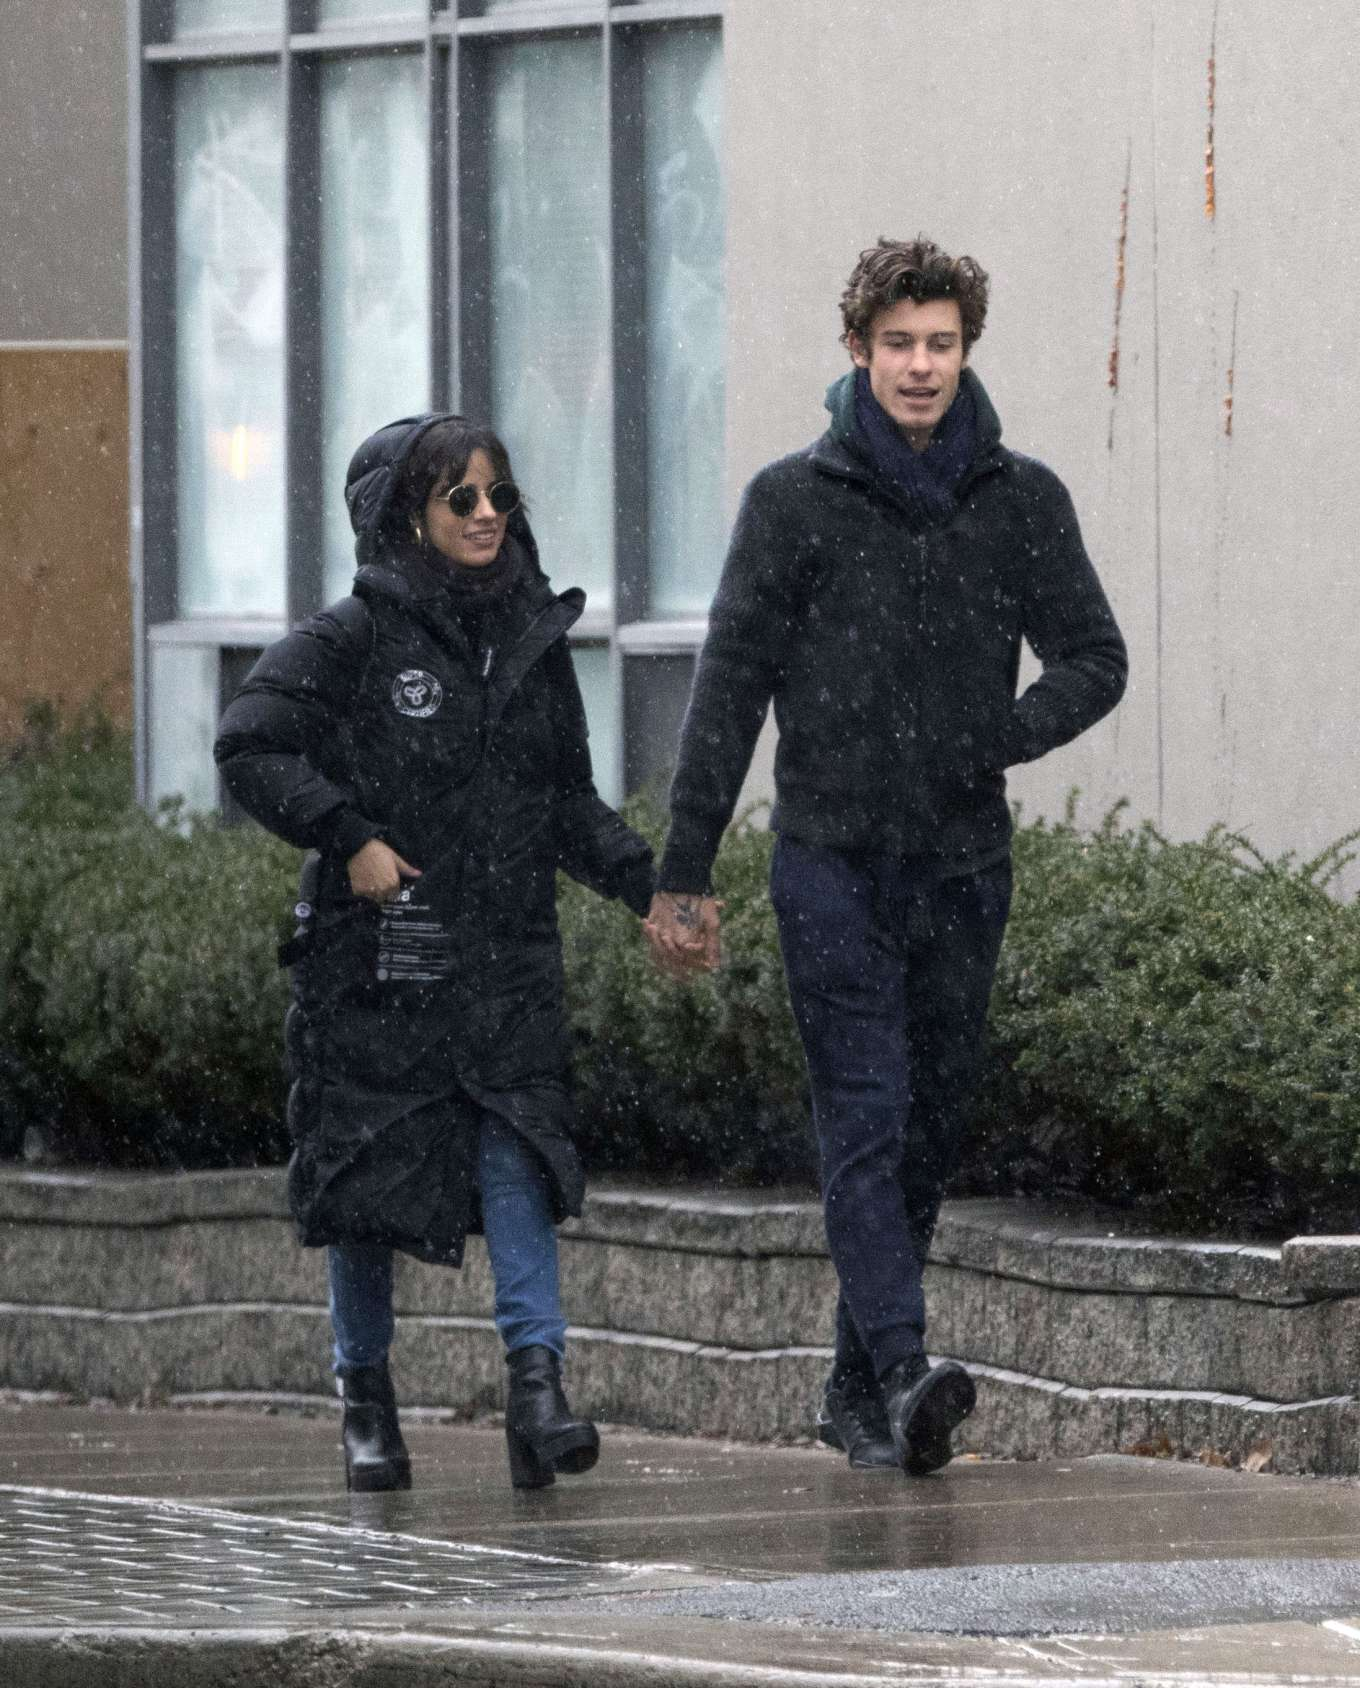 Camila Cabello And Shawn Mendes Out On New Years Day In Toronto 06 Gotceleb